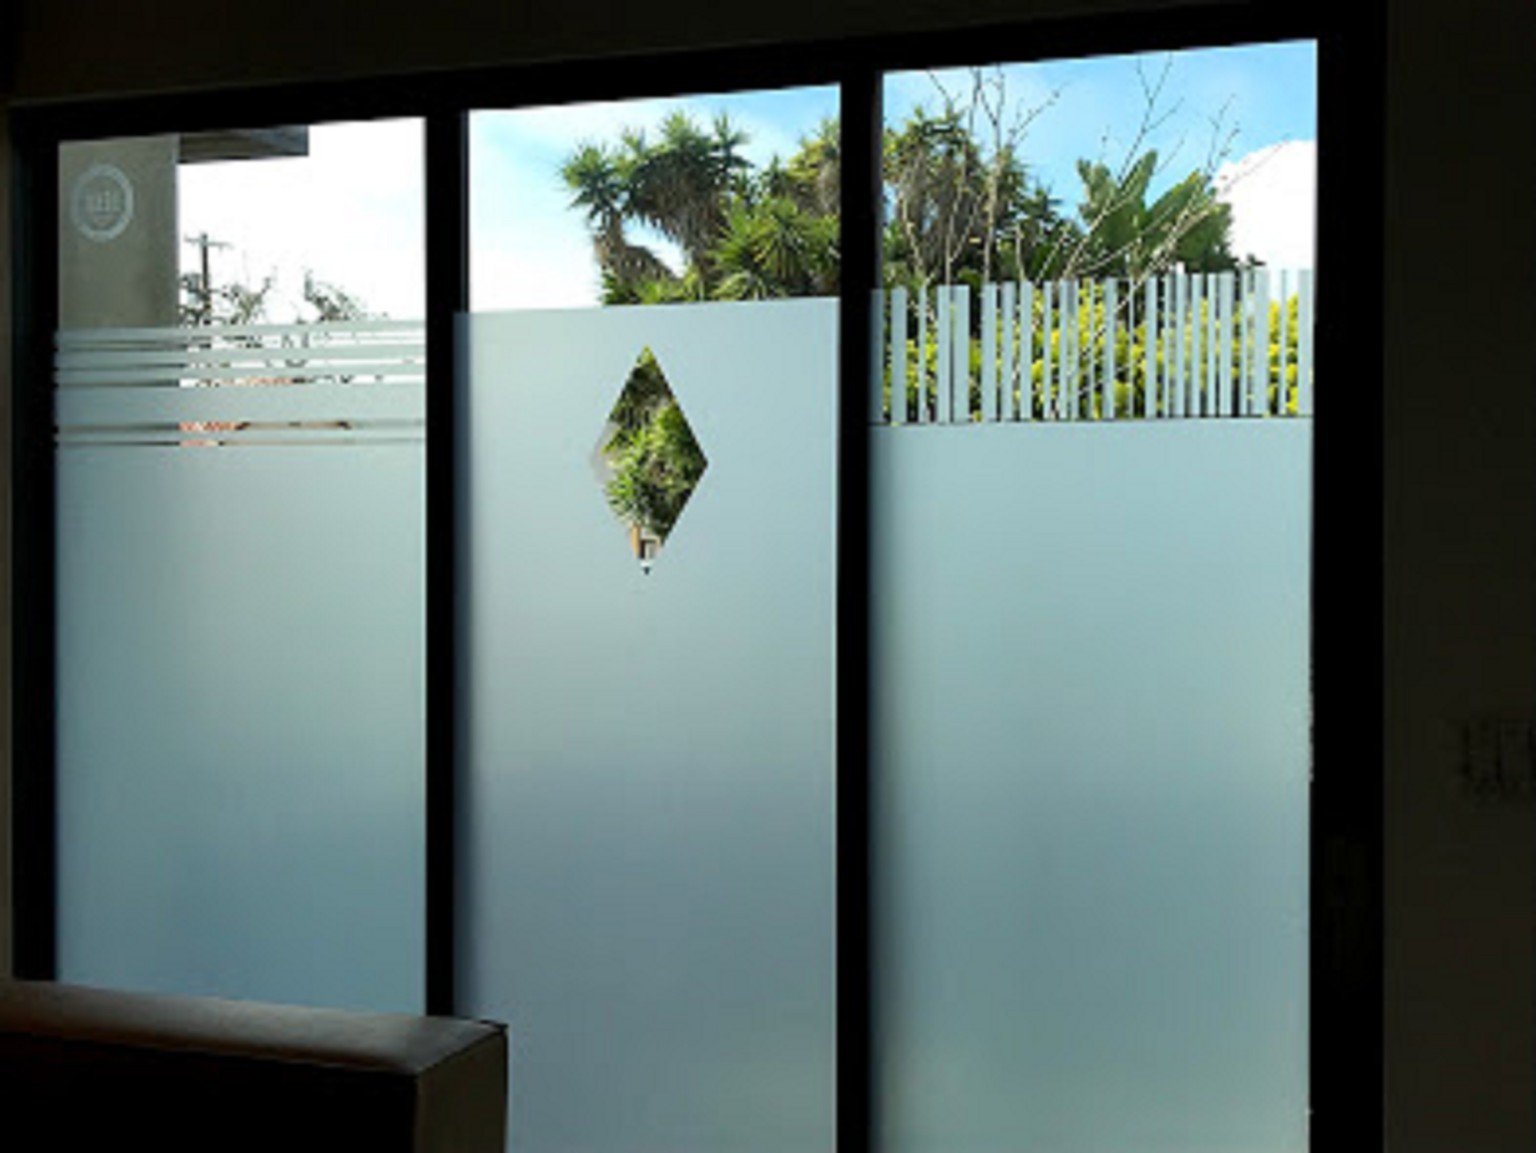 Privacy film on glass